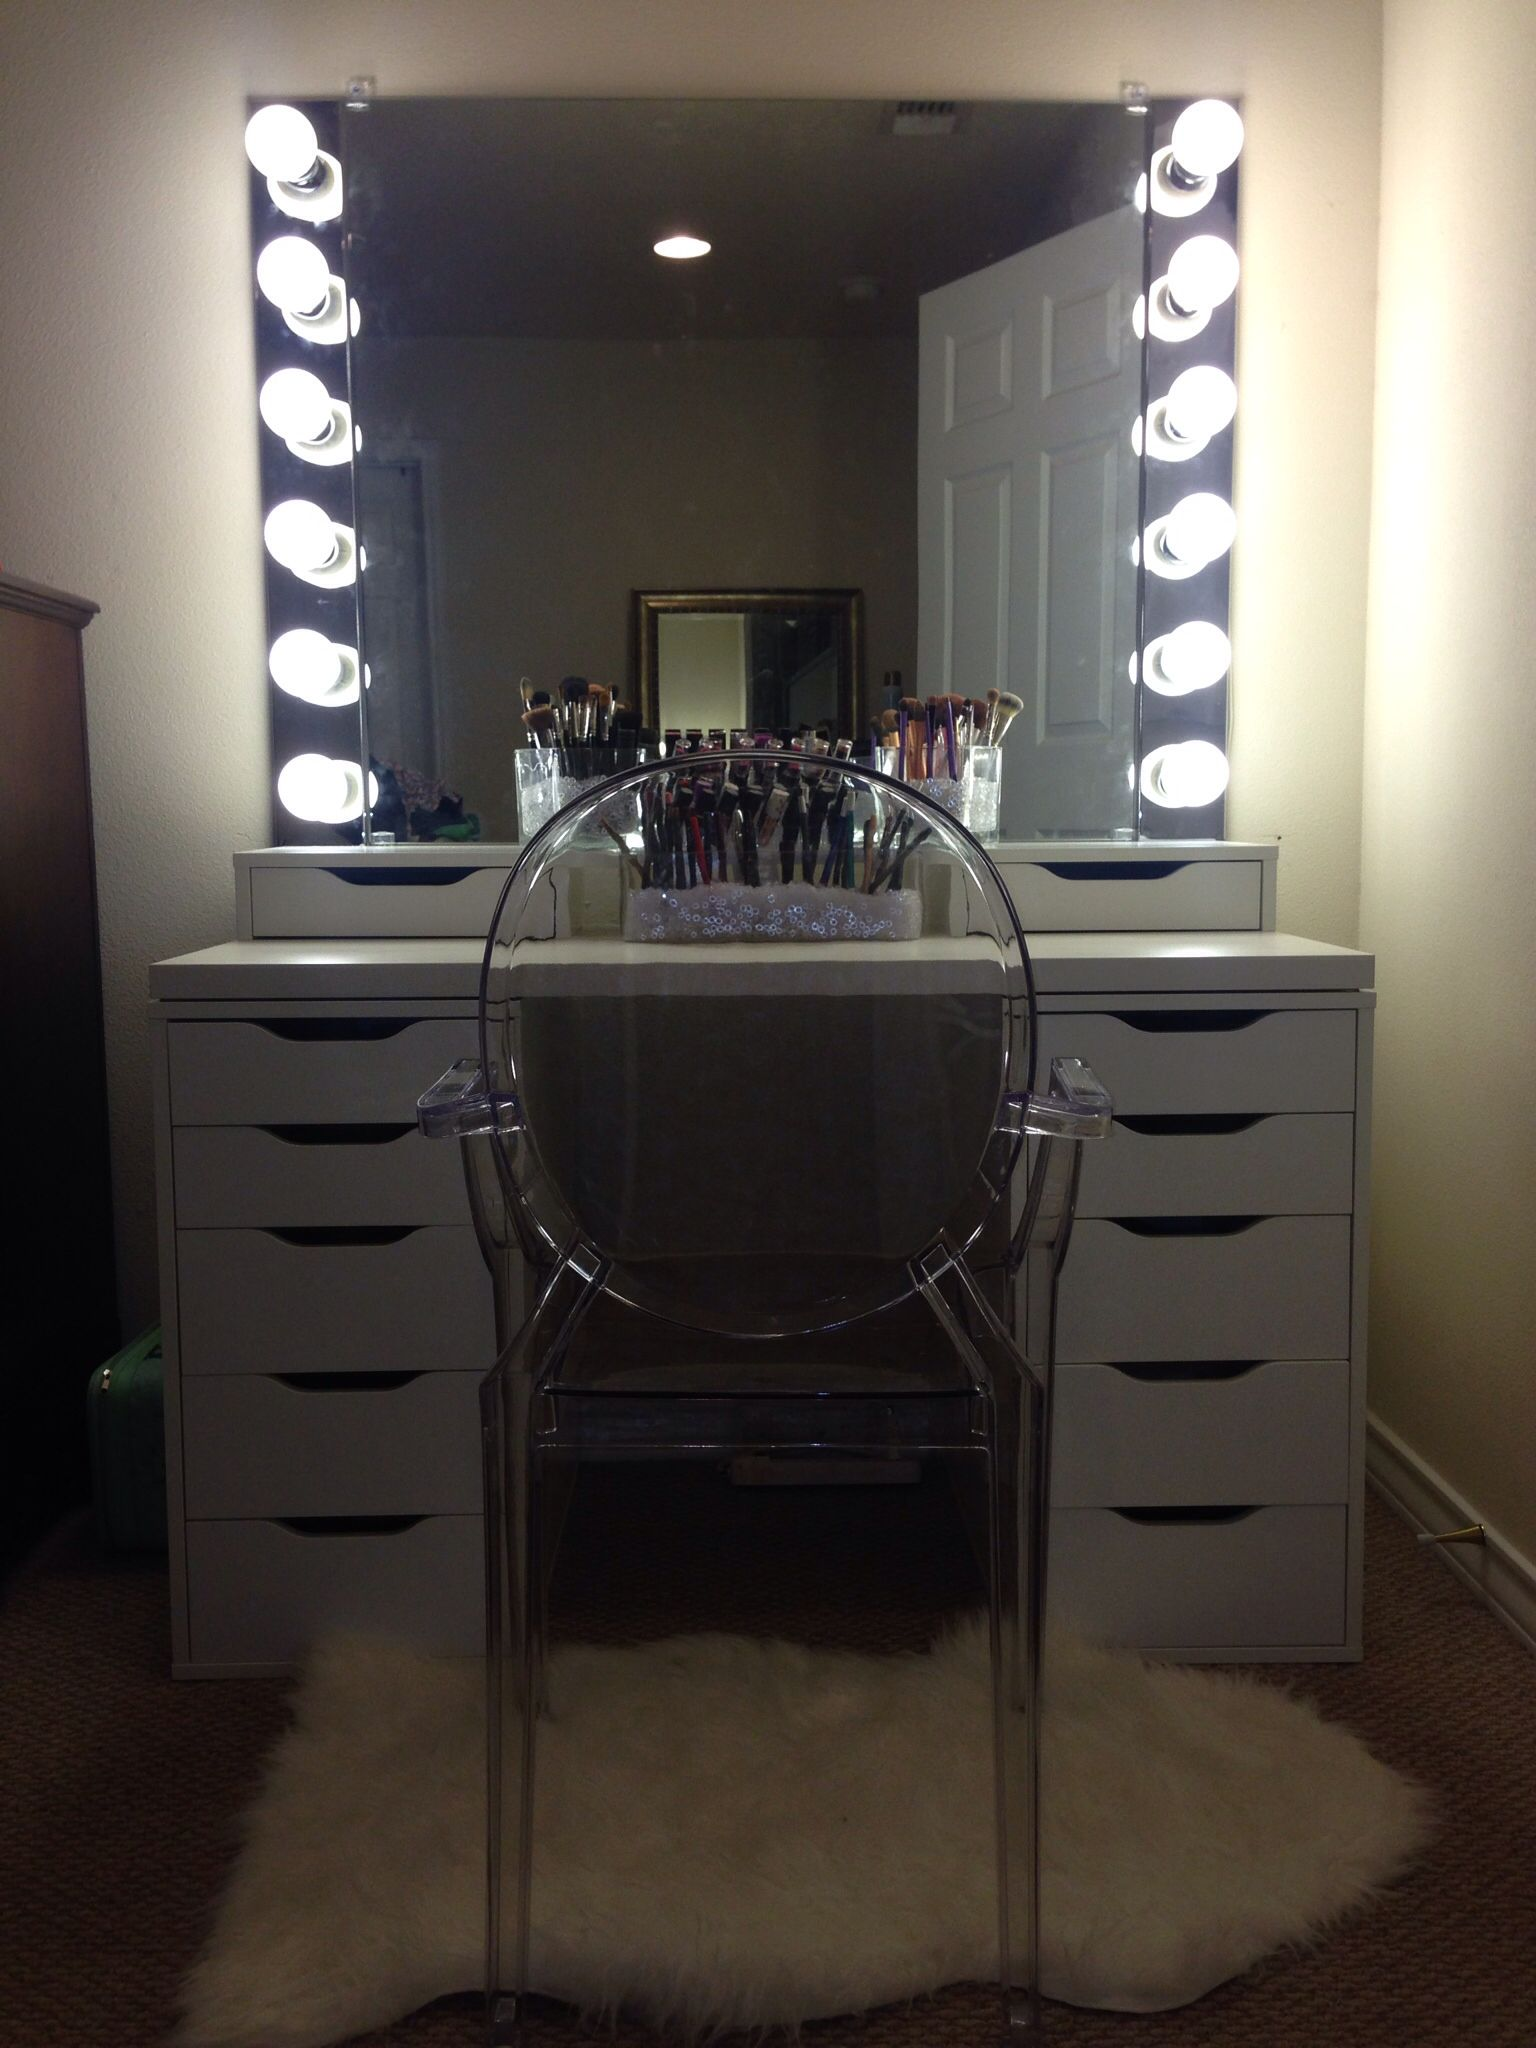 design philippines vanity with around fascinating diy plan designs round home makeup it light bulbs lights mirror for